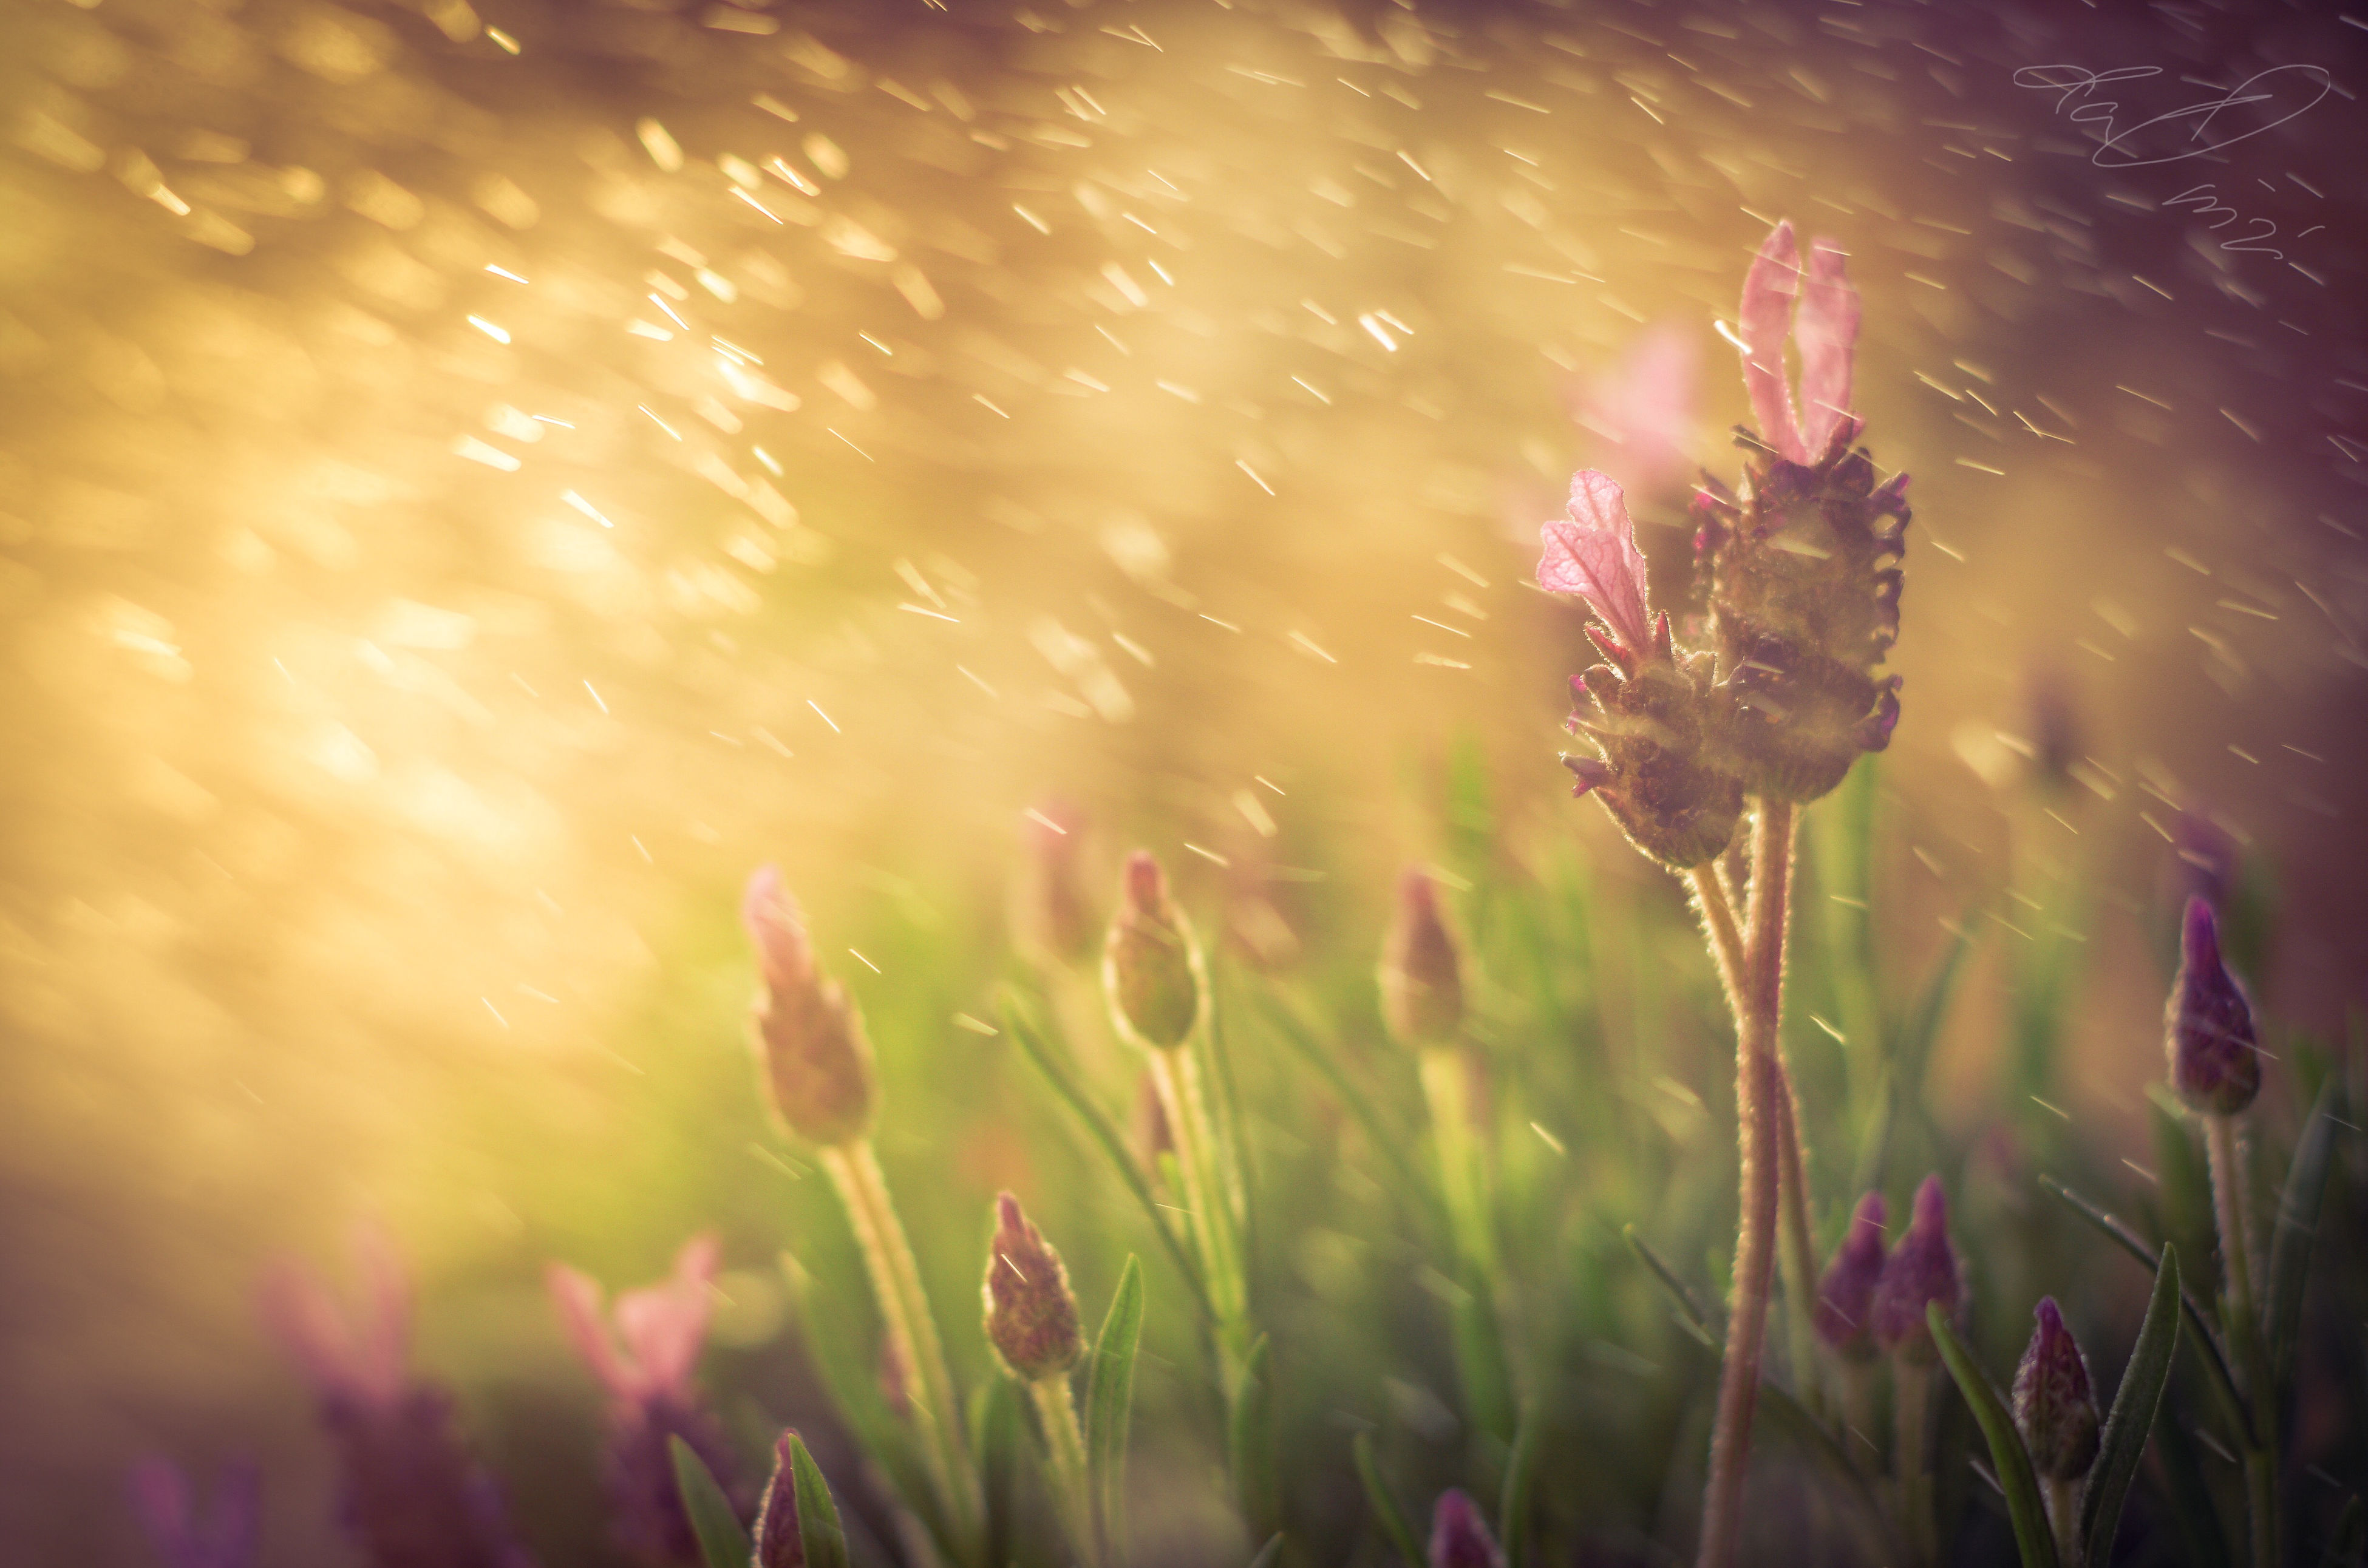 flower, freshness, growth, fragility, beauty in nature, plant, petal, flower head, close-up, nature, pink color, blooming, focus on foreground, selective focus, outdoors, in bloom, day, stem, sunlight, single flower